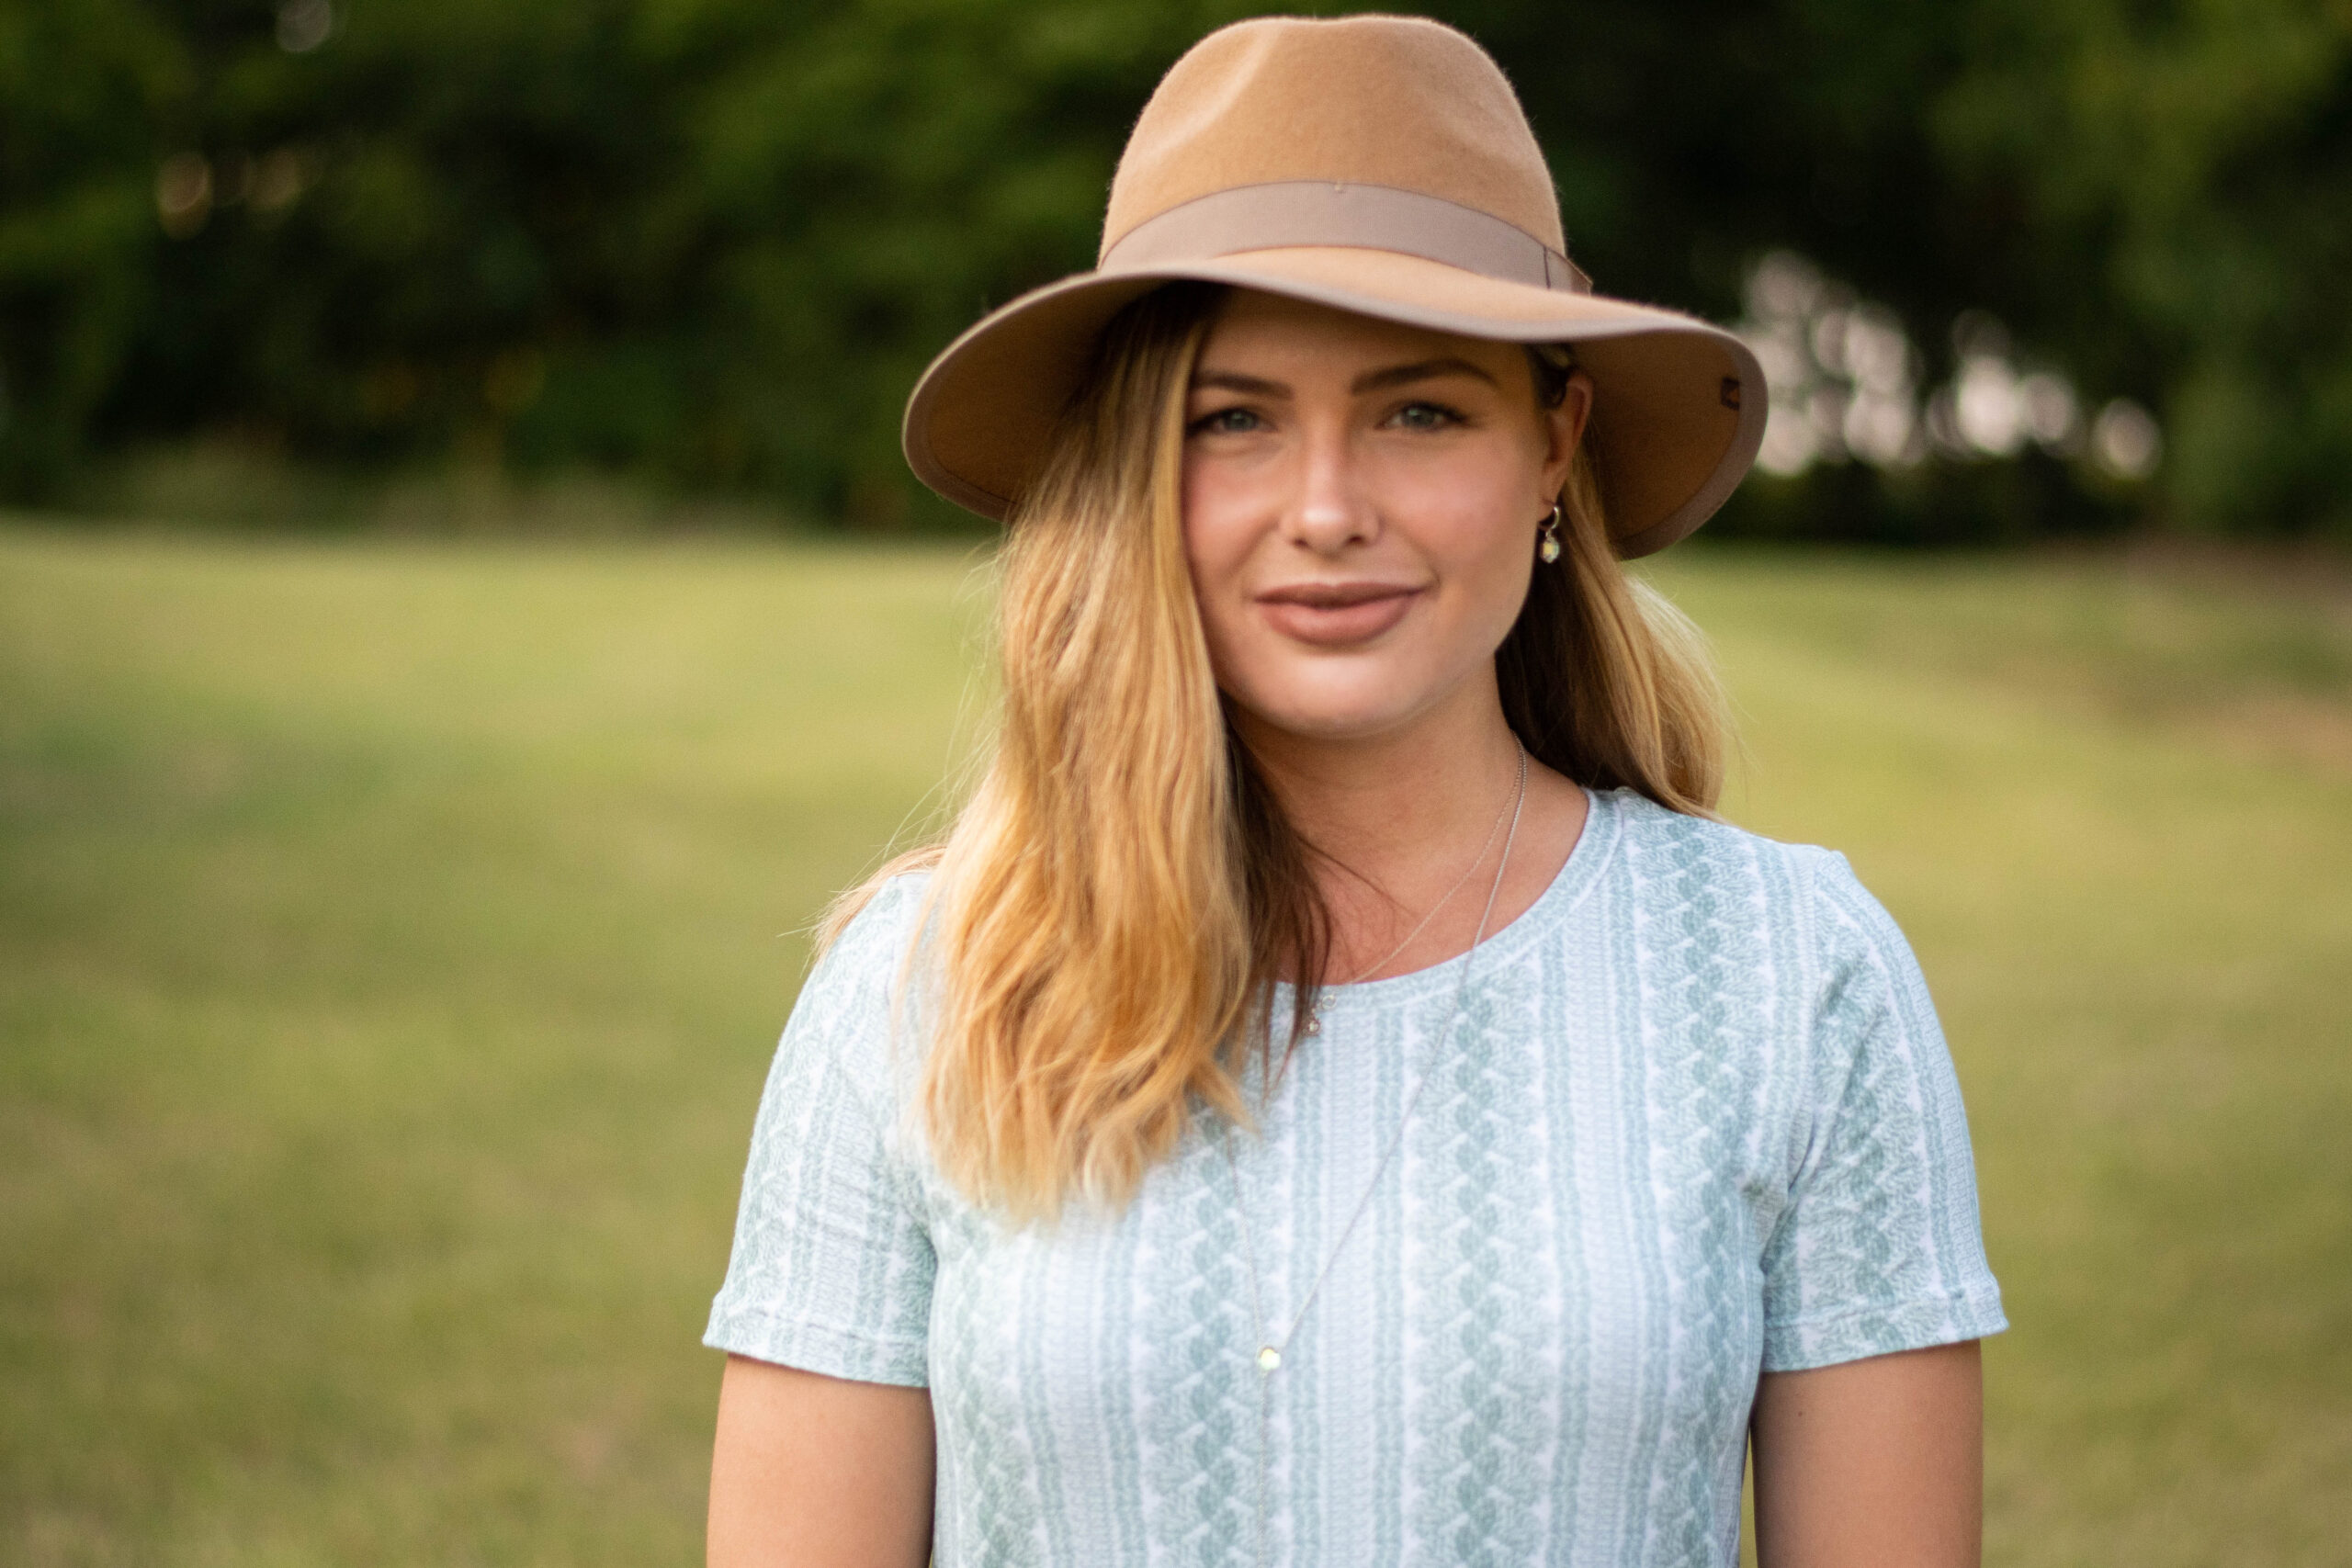 Elizabeth stands in front of a field of grass, wearing a camel colored hat and a t-shirt dress made out of a cable knit sweater look french terry fabric in a sage cream and cream color scheme